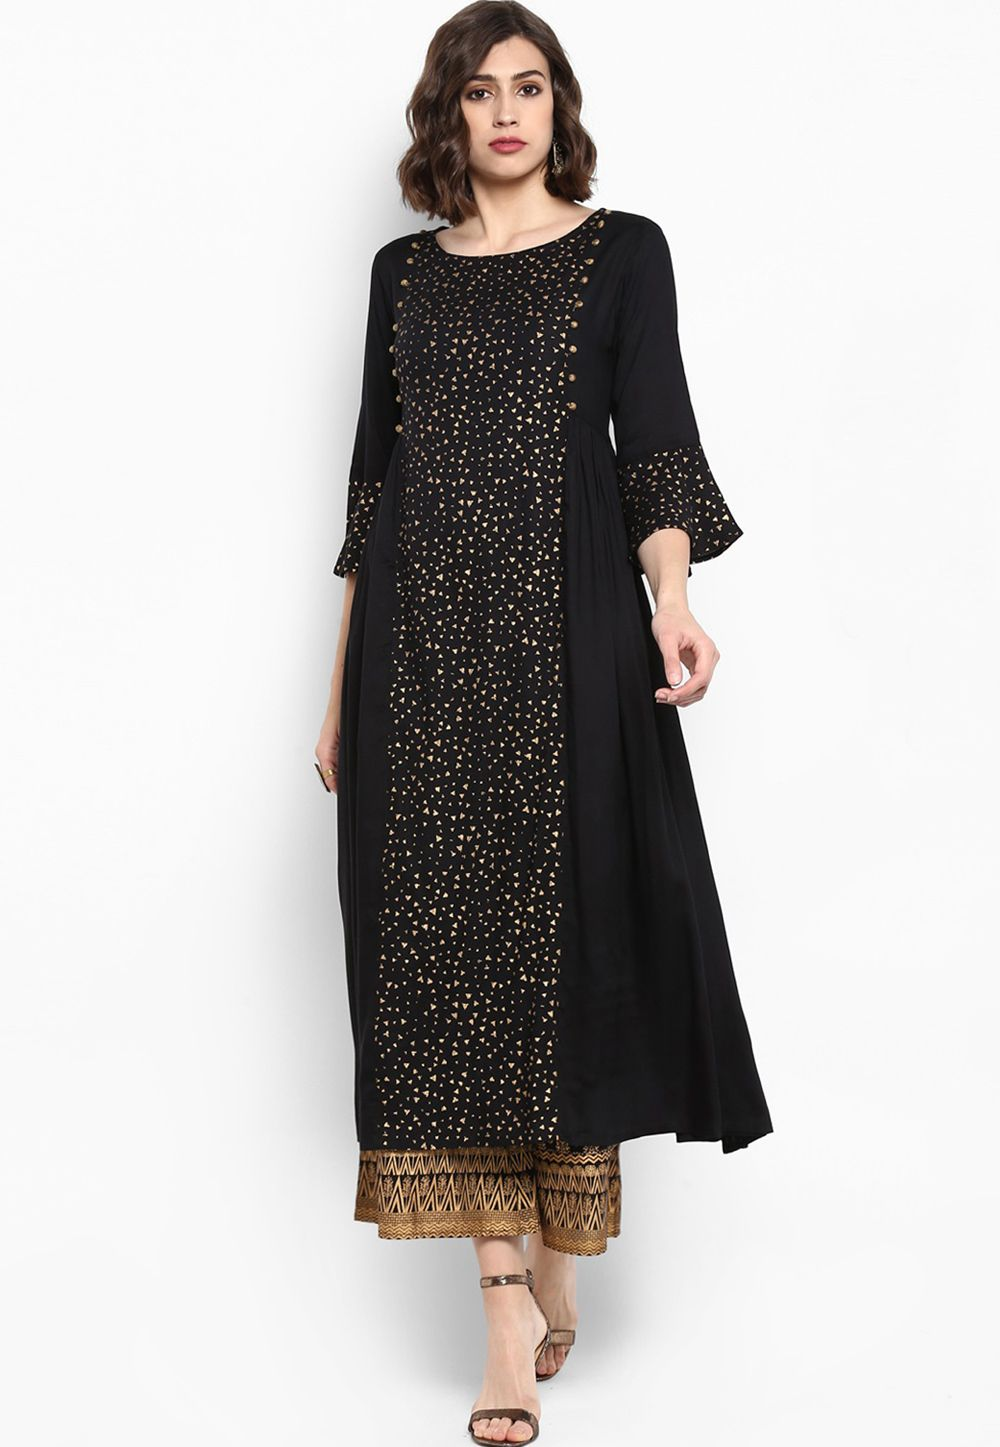 ad3e6f6f38 Shop Black Cotton Readymade Long Tunic 156880 online at best price from  vast collection of designer kurti at Indianclothstore.com.